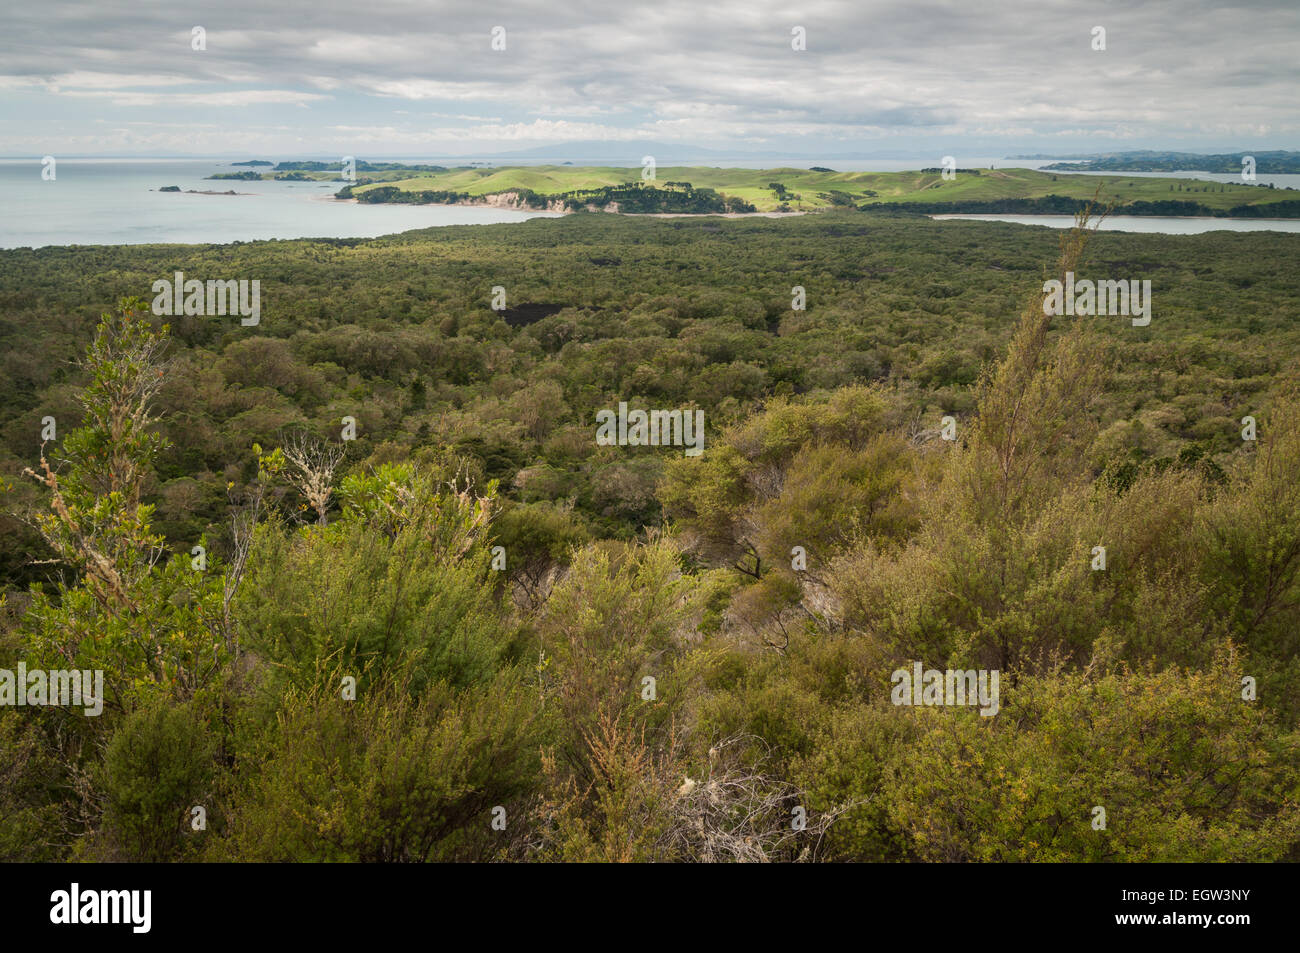 Rangitoto and Motutapu Island, Auckland, North Island, New Zealand. - Stock Image